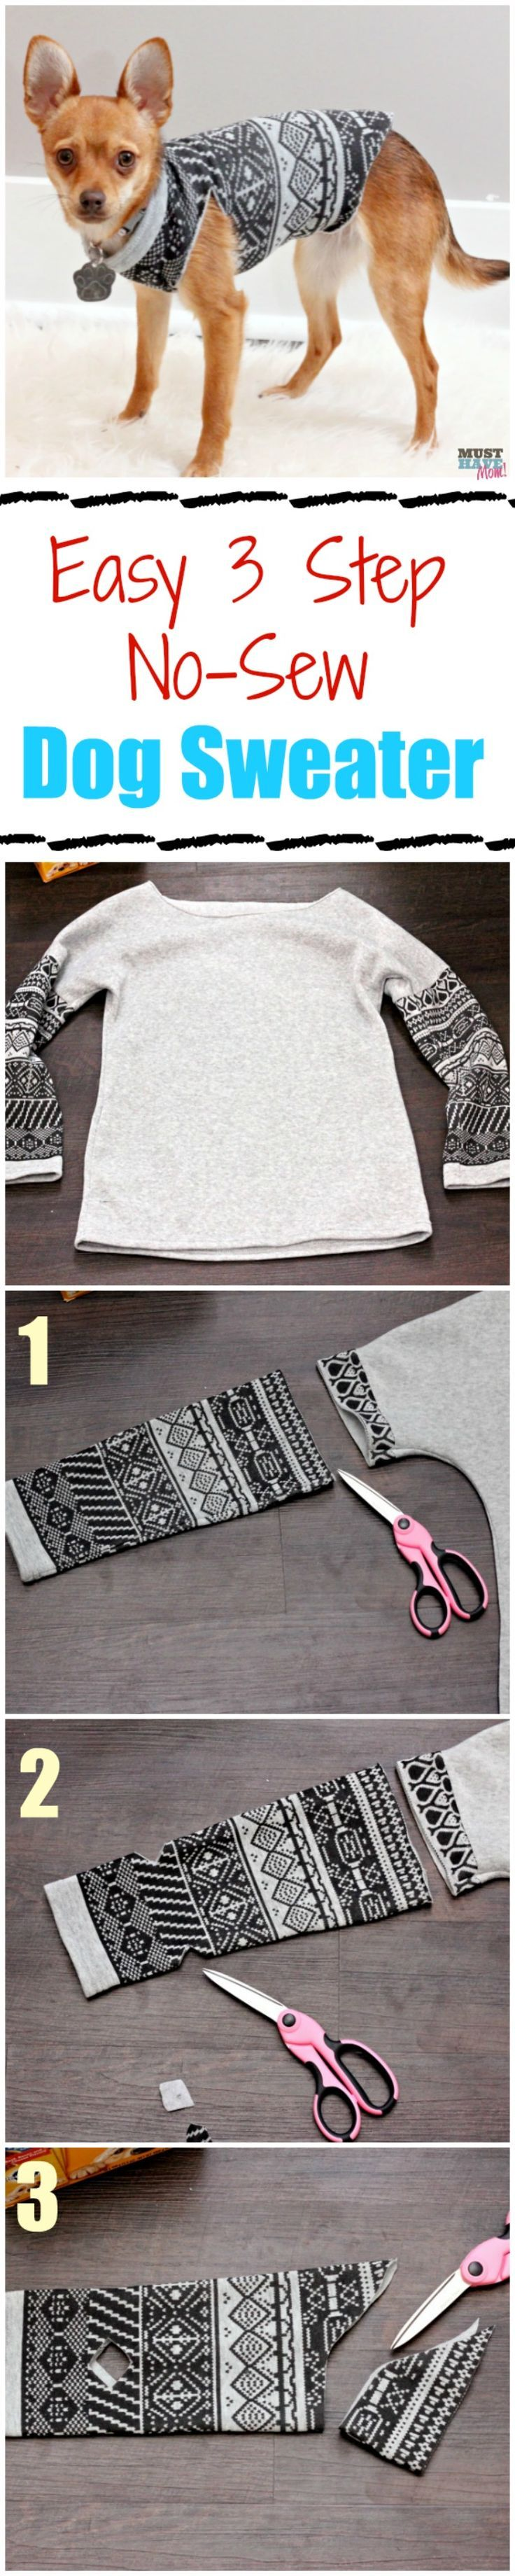 Make A DIY Dog Sweater From A Sweatshirt + Doggie Travel Tips!